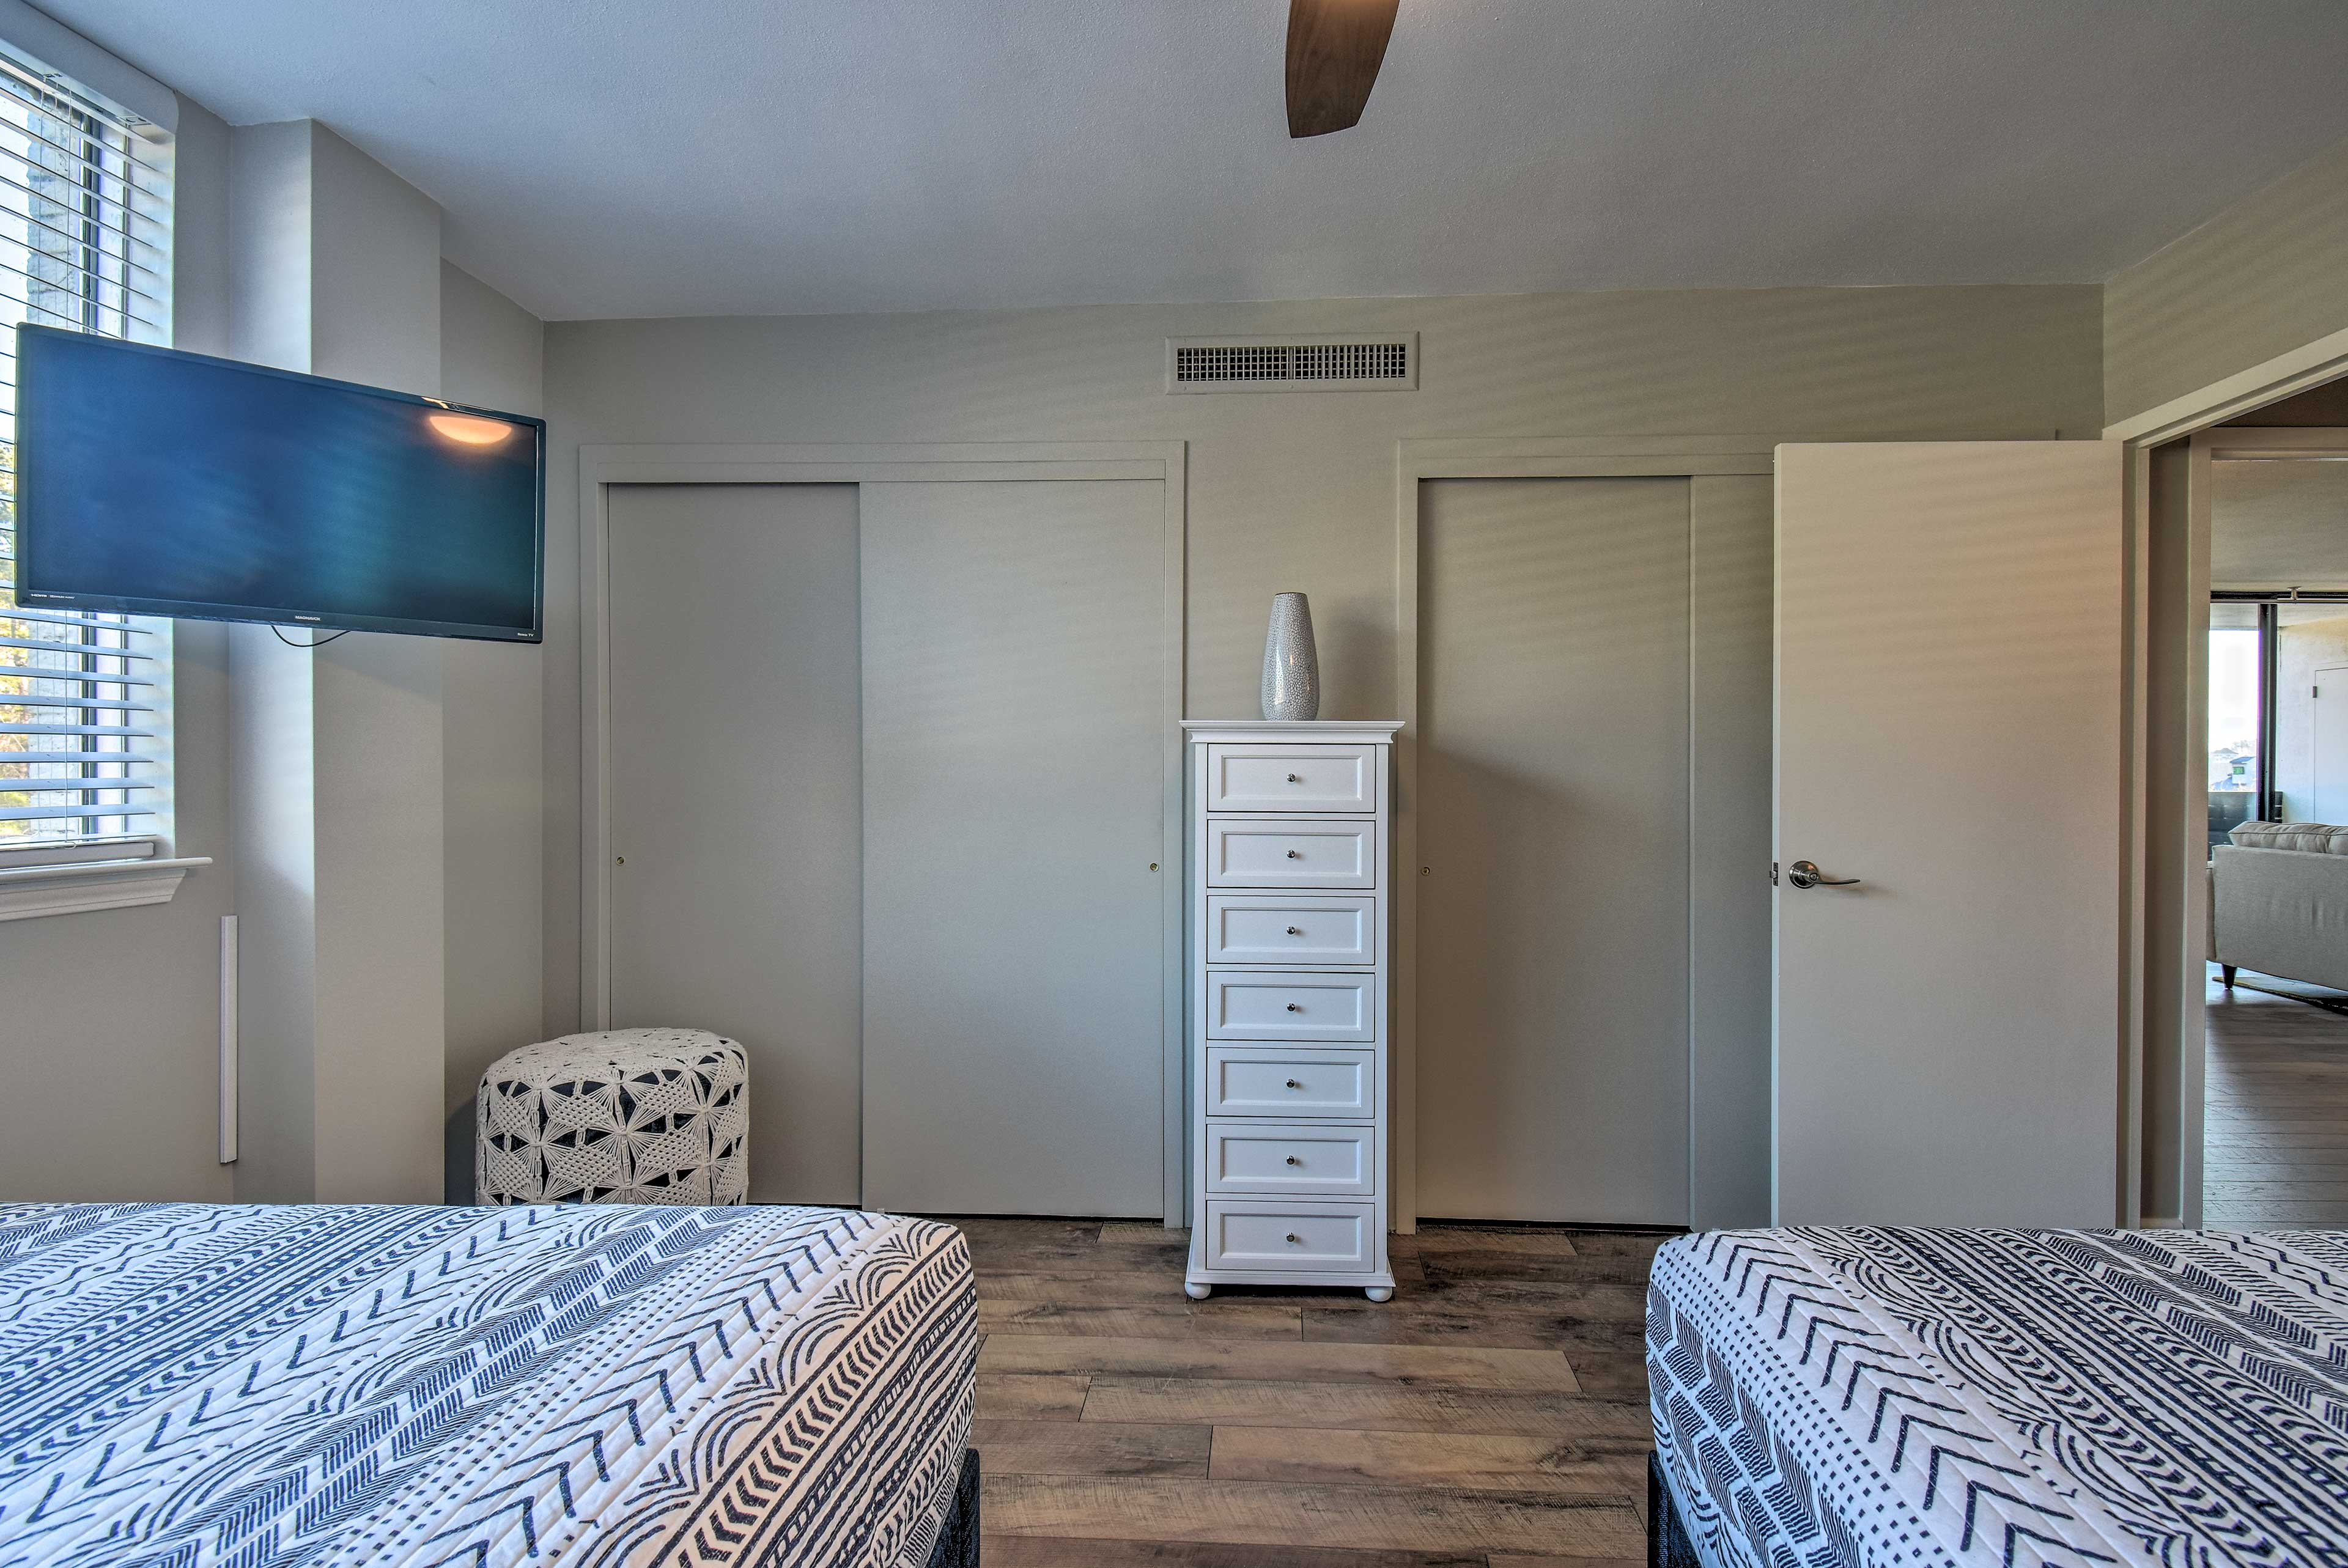 This room also features a flat-screen cable TV.